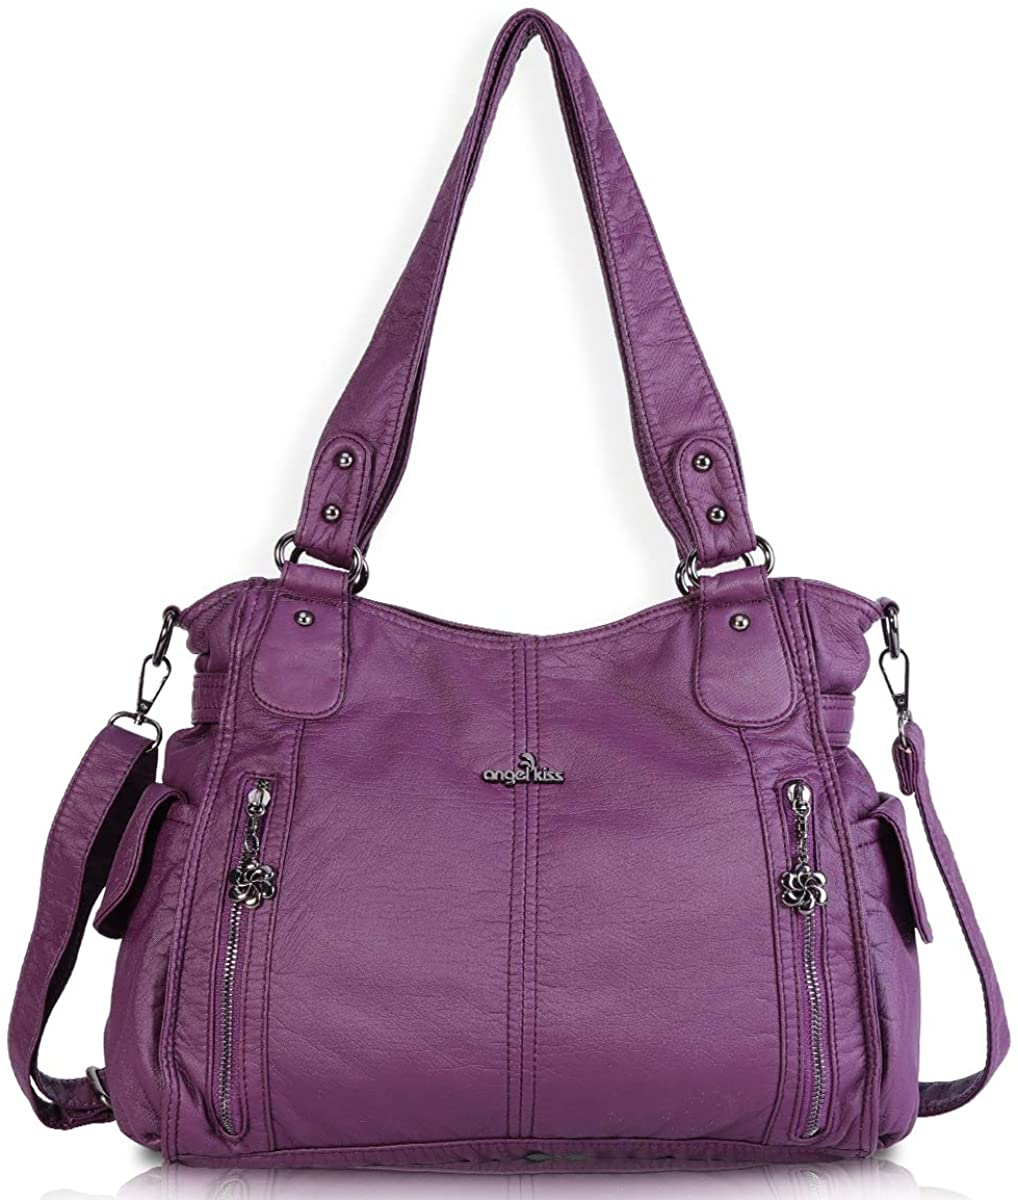 Women Handbags Shoulder Bags Washed Leather Satchel Tote Bag Mutipocket Purse (1193-2 Purple)  Clothing